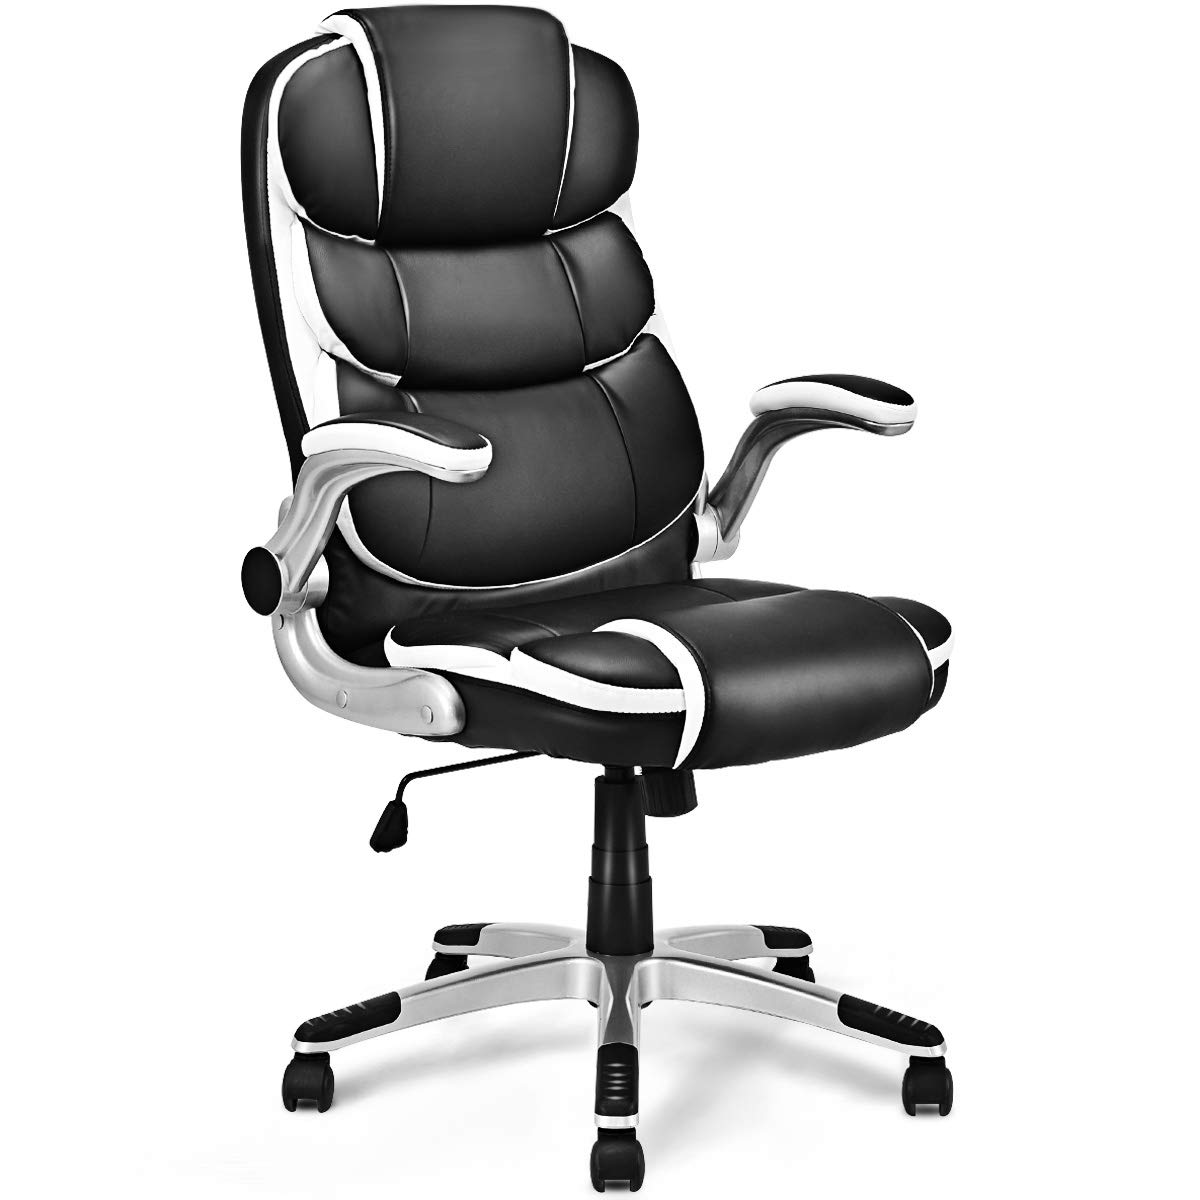 Giantex Executive Office Chair with Adjustable Armrest PU Leather High Back Ergonomic Computer Desk Task Chair, Black